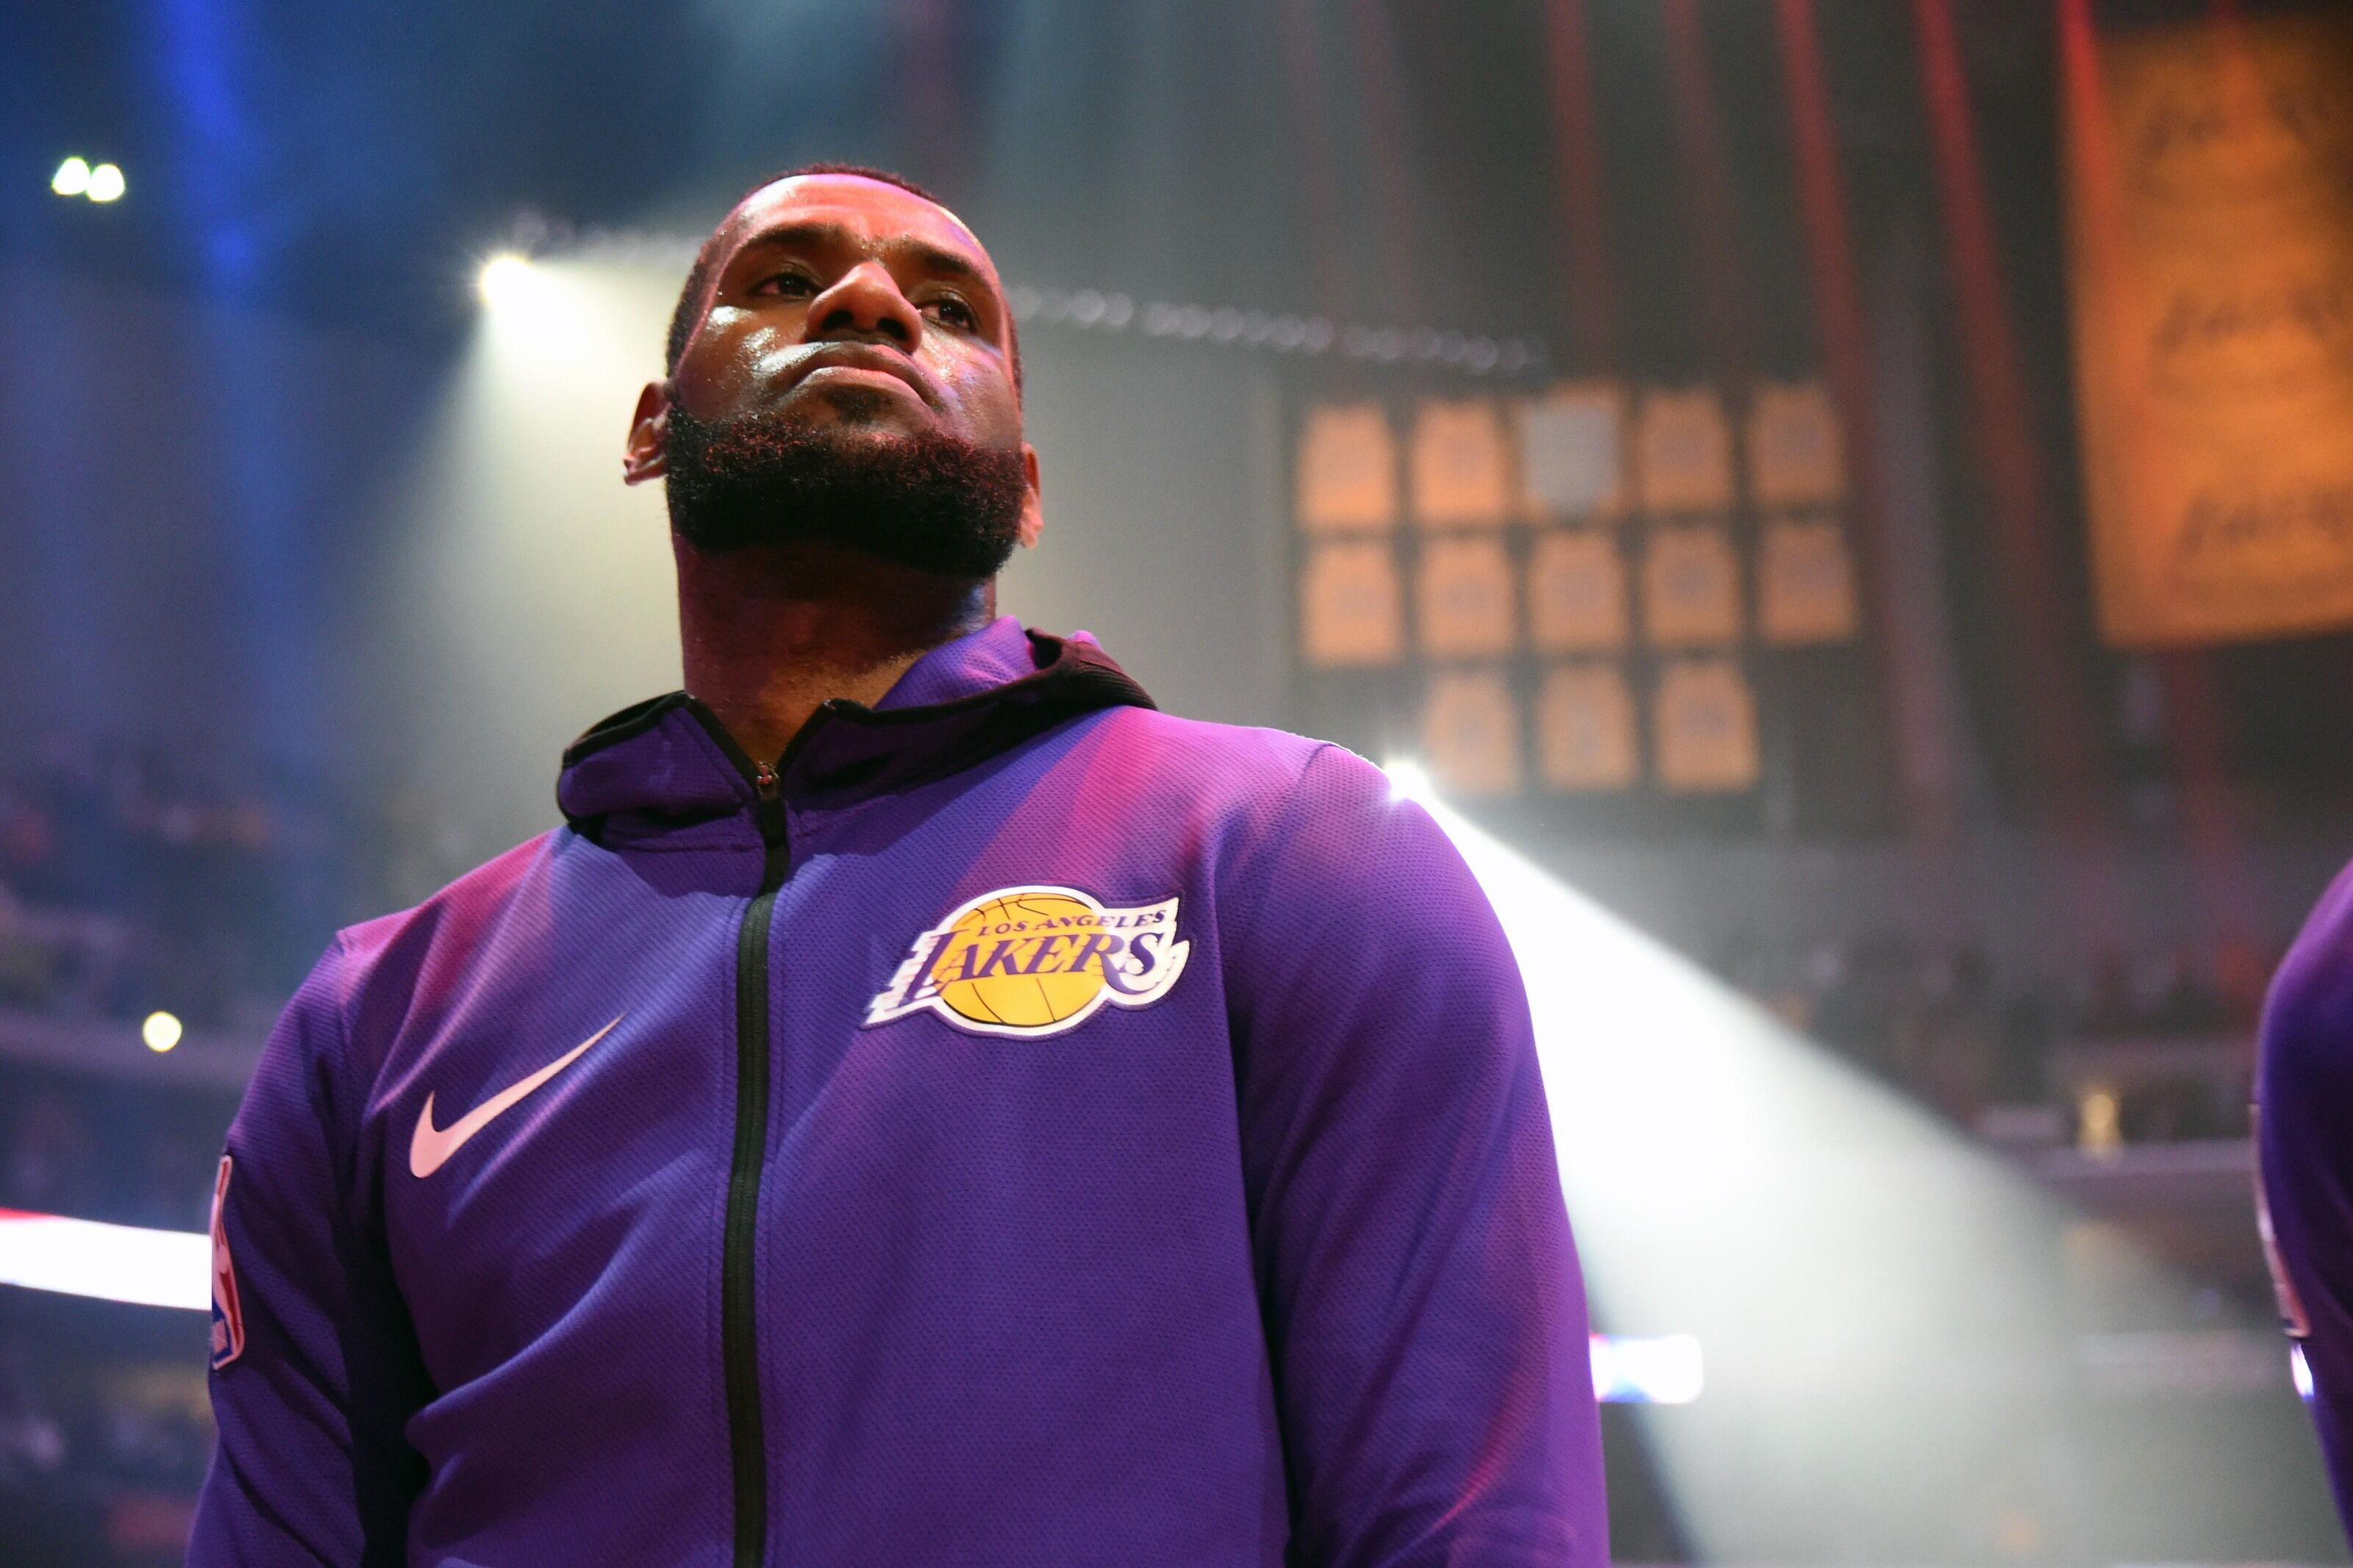 LeBron James: Is he the most powerful athlete in all of sports?